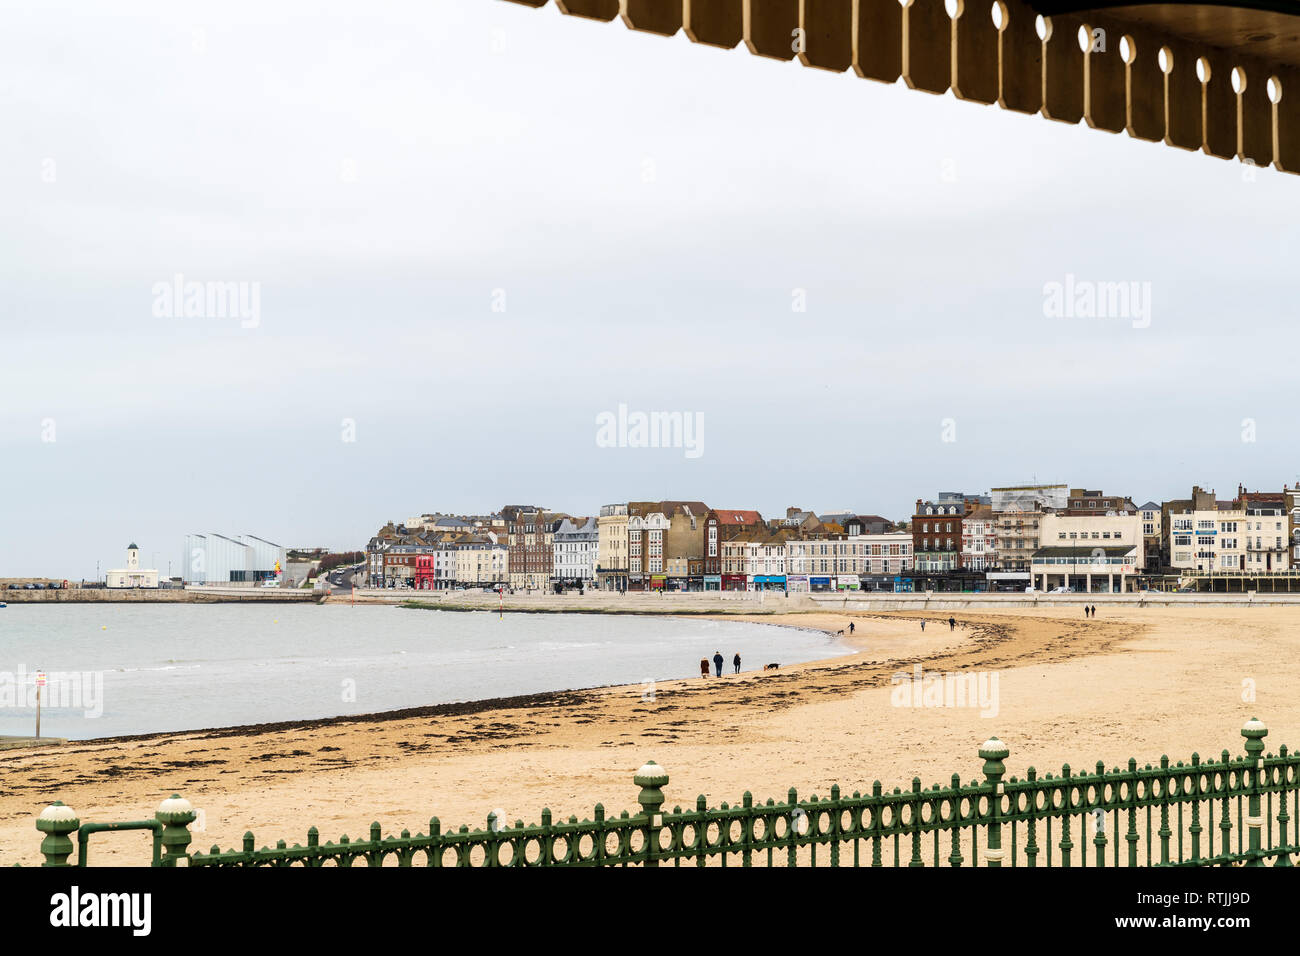 Landscape of Margate seafront with the main sands, Turner Center art gallery and seafront buildings. Grey overcast sky. Some people on beach walking. - Stock Image